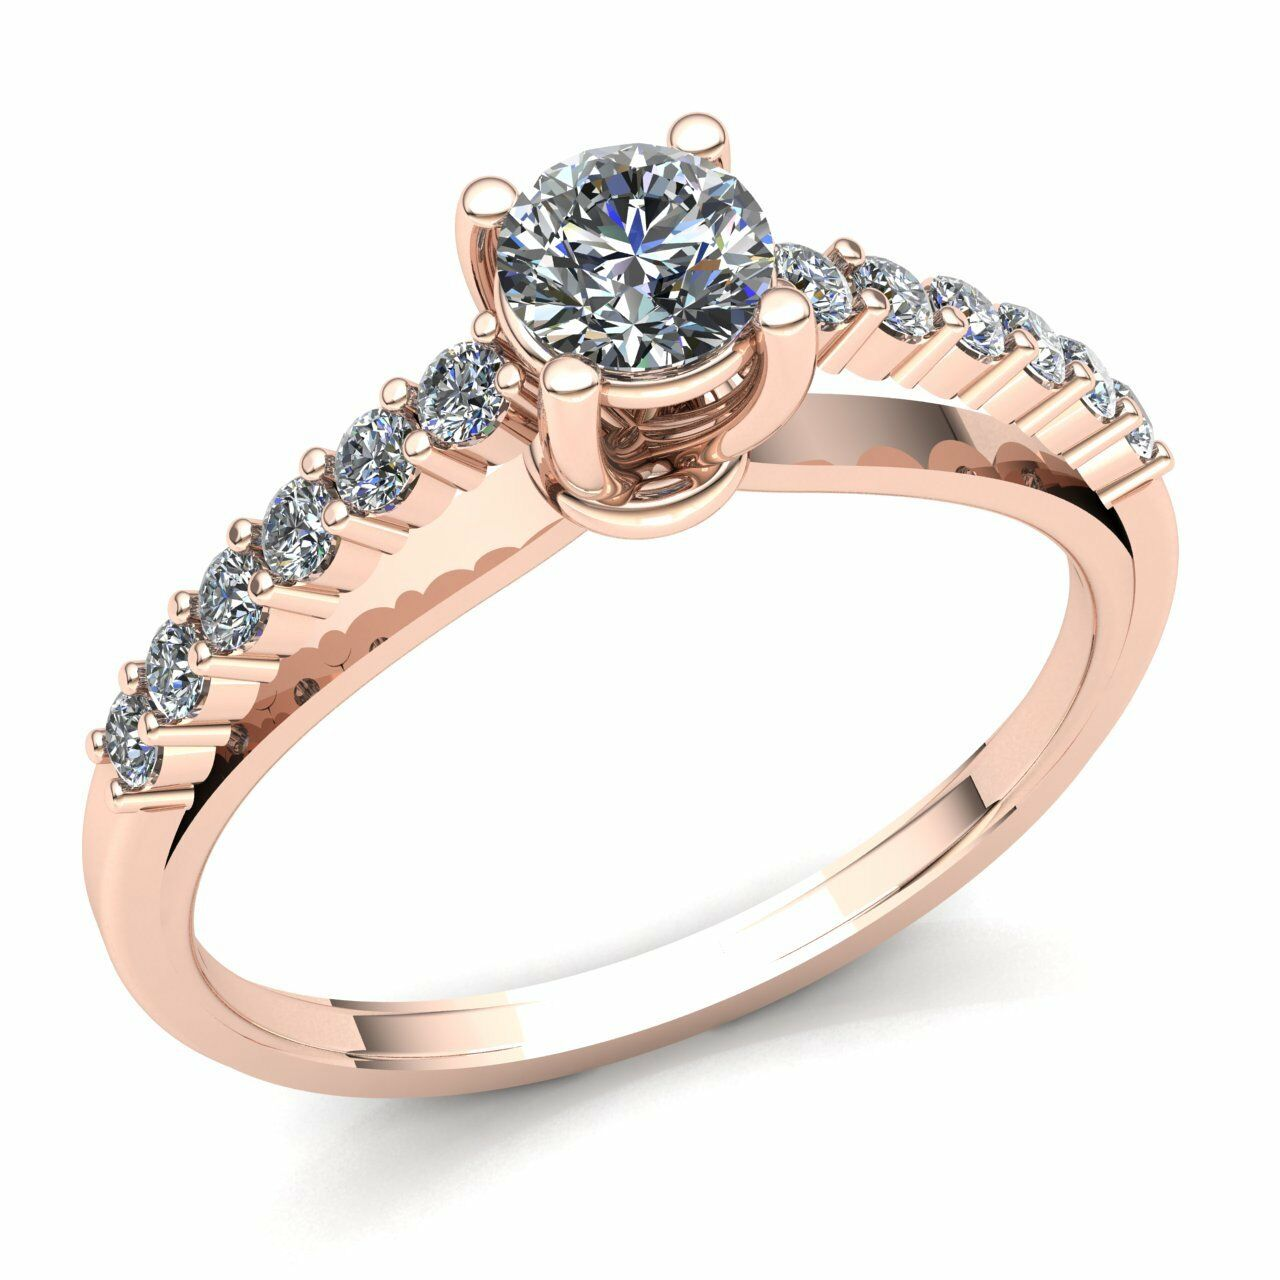 Genuine 0.60ctw Round Diamond Ladies Accented Solitaire Engagement Ring 14K gold